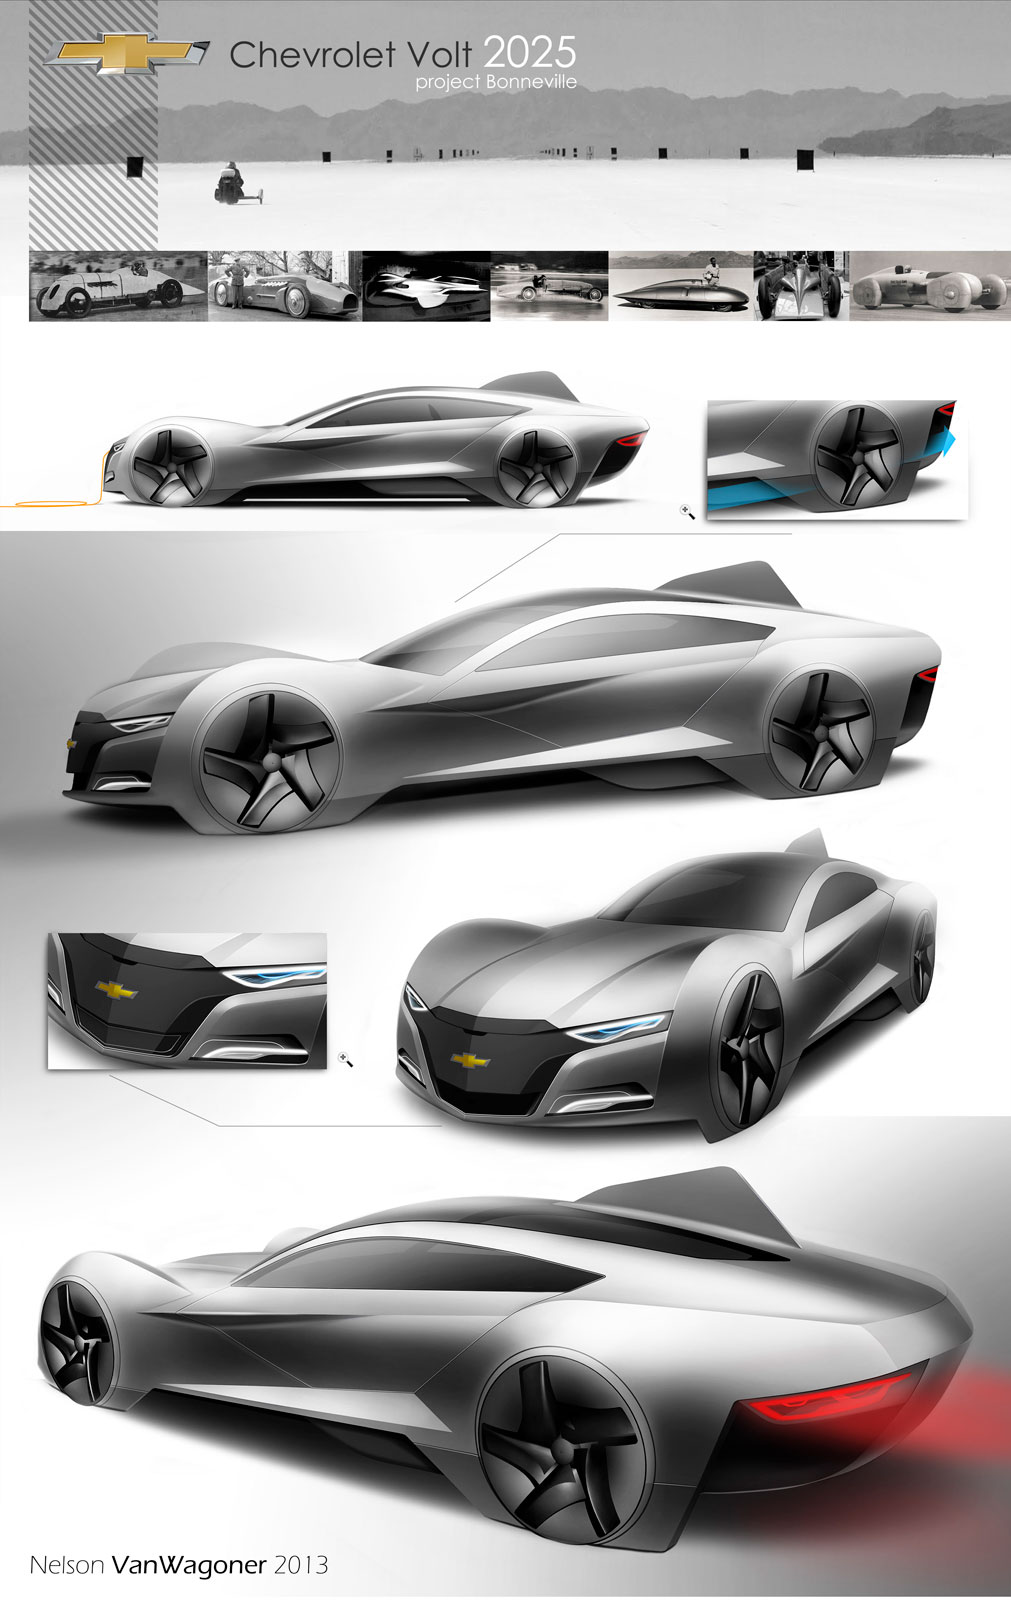 automobile design essay Good design apple's products are getting harder to use because they ignore principles of design 10 august 2015 i was once proud to be at apple, proud of apple's reputation of advancing ease of use and understanding.